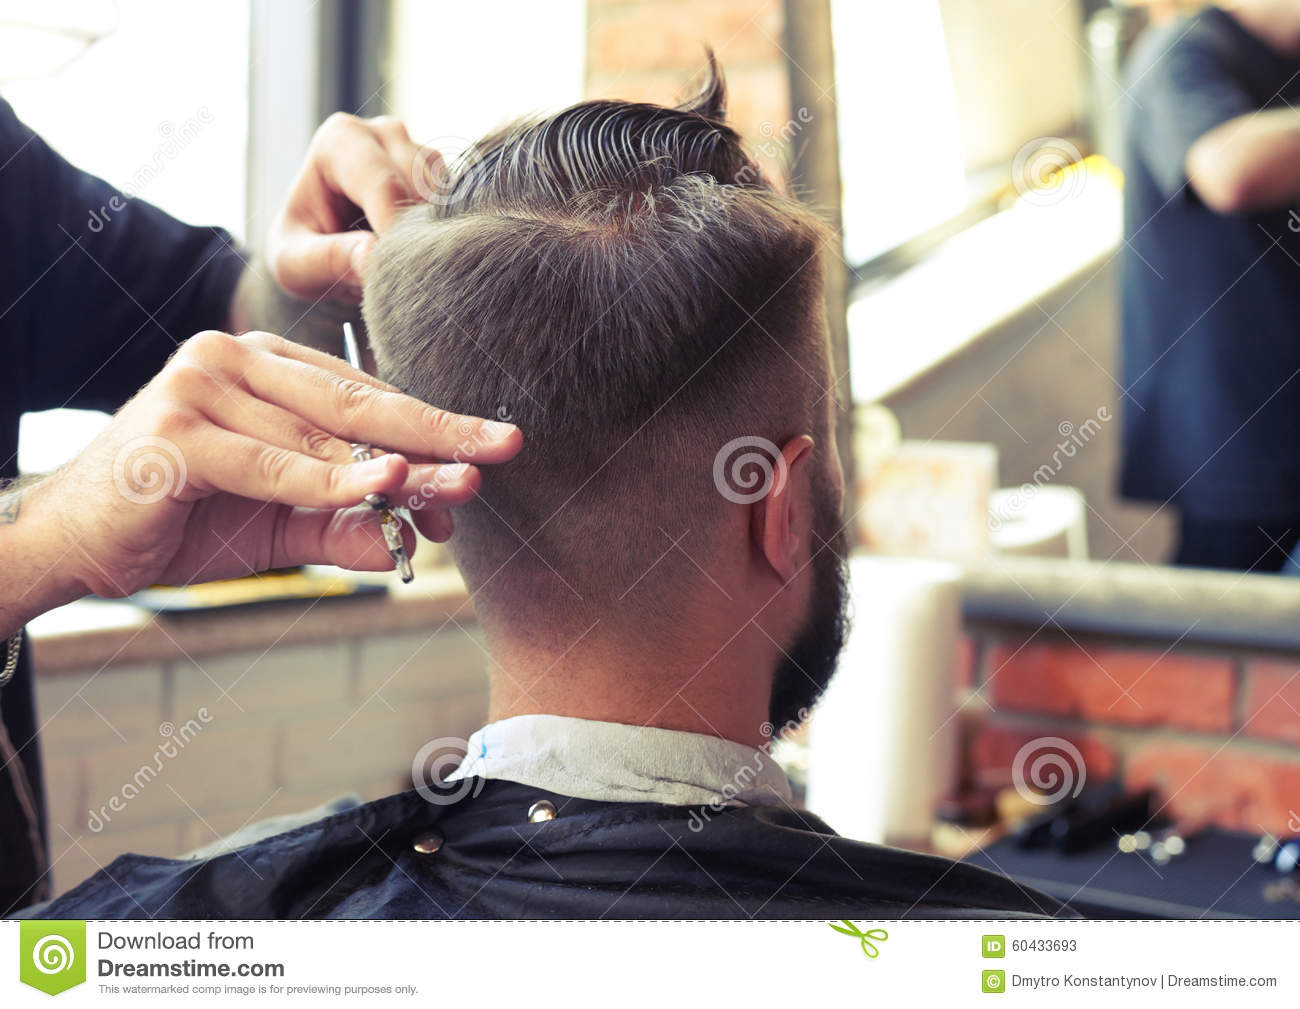 Barber cutting hair with scissors